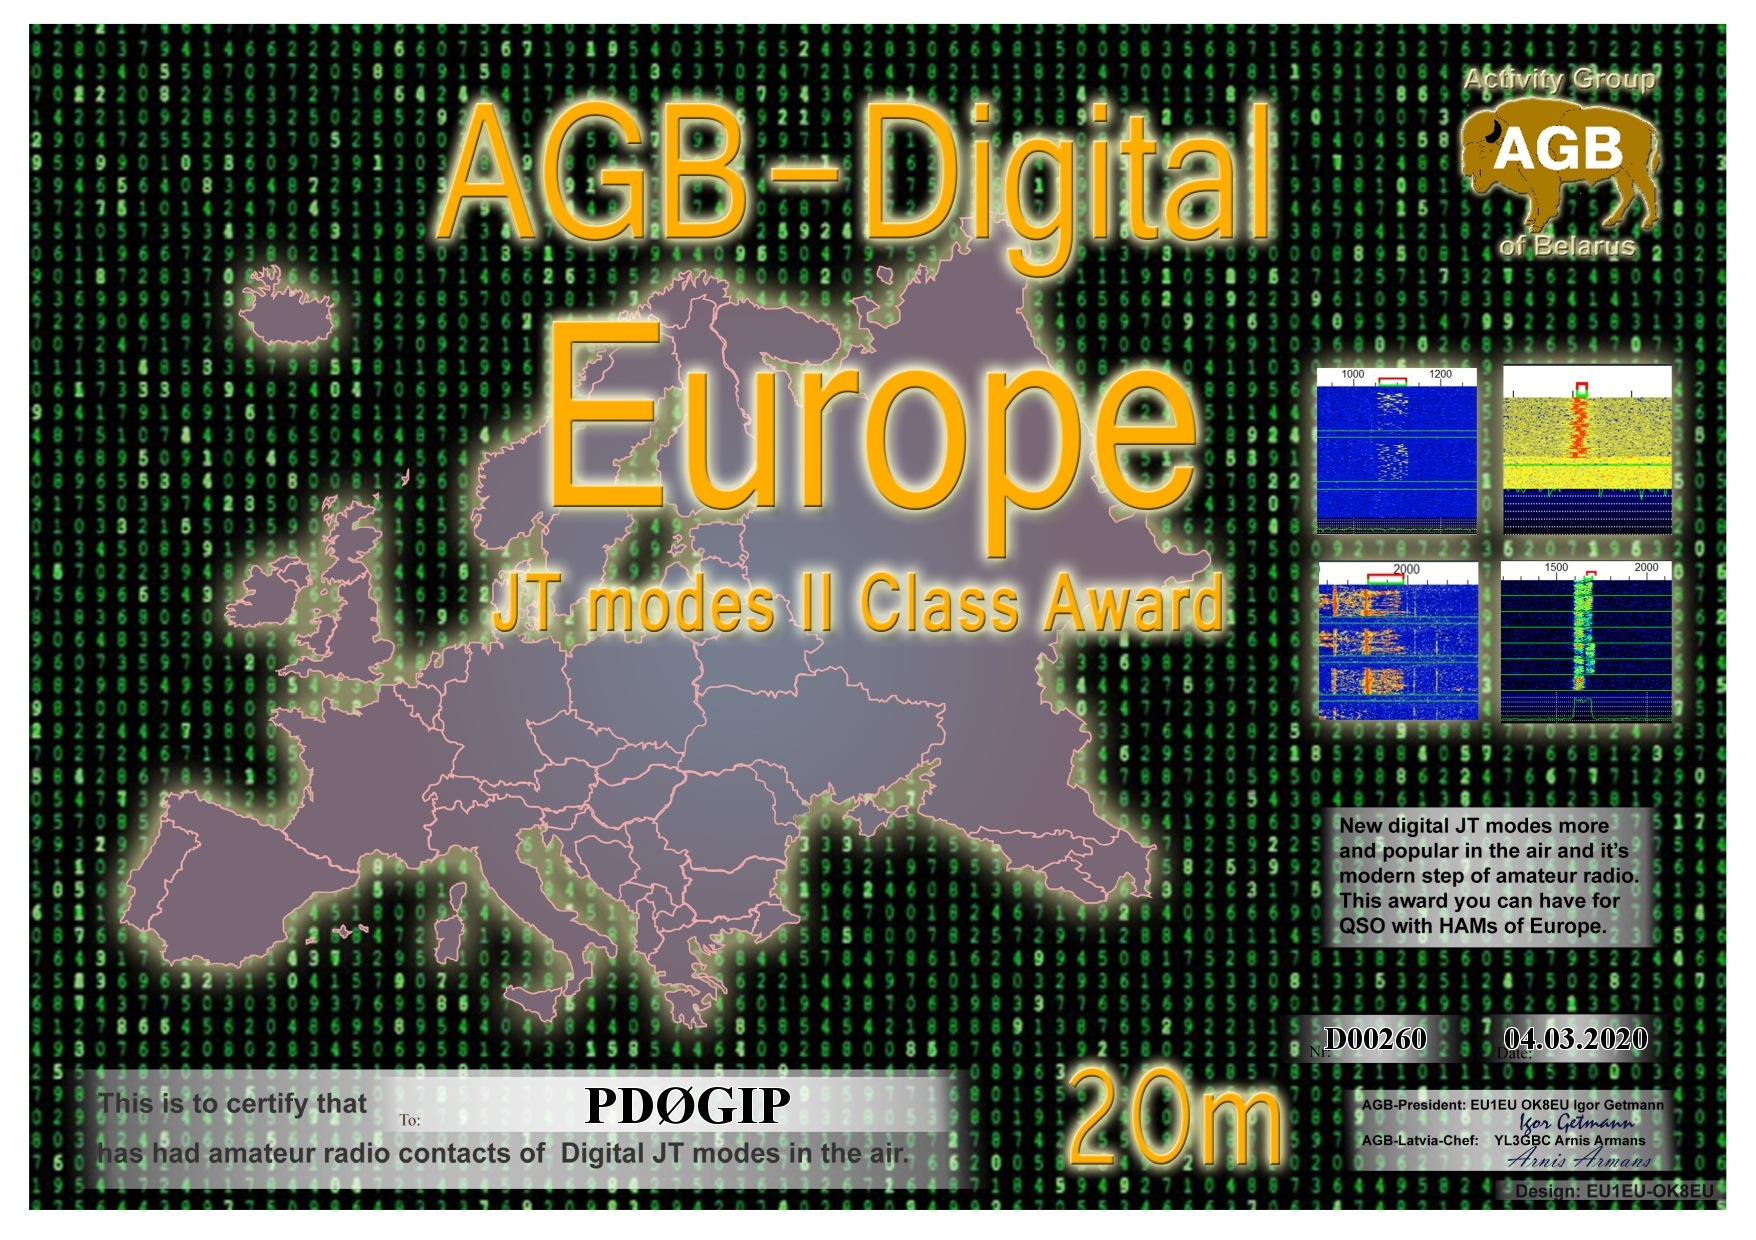 PD0GIP EUROPE 20M II AGB